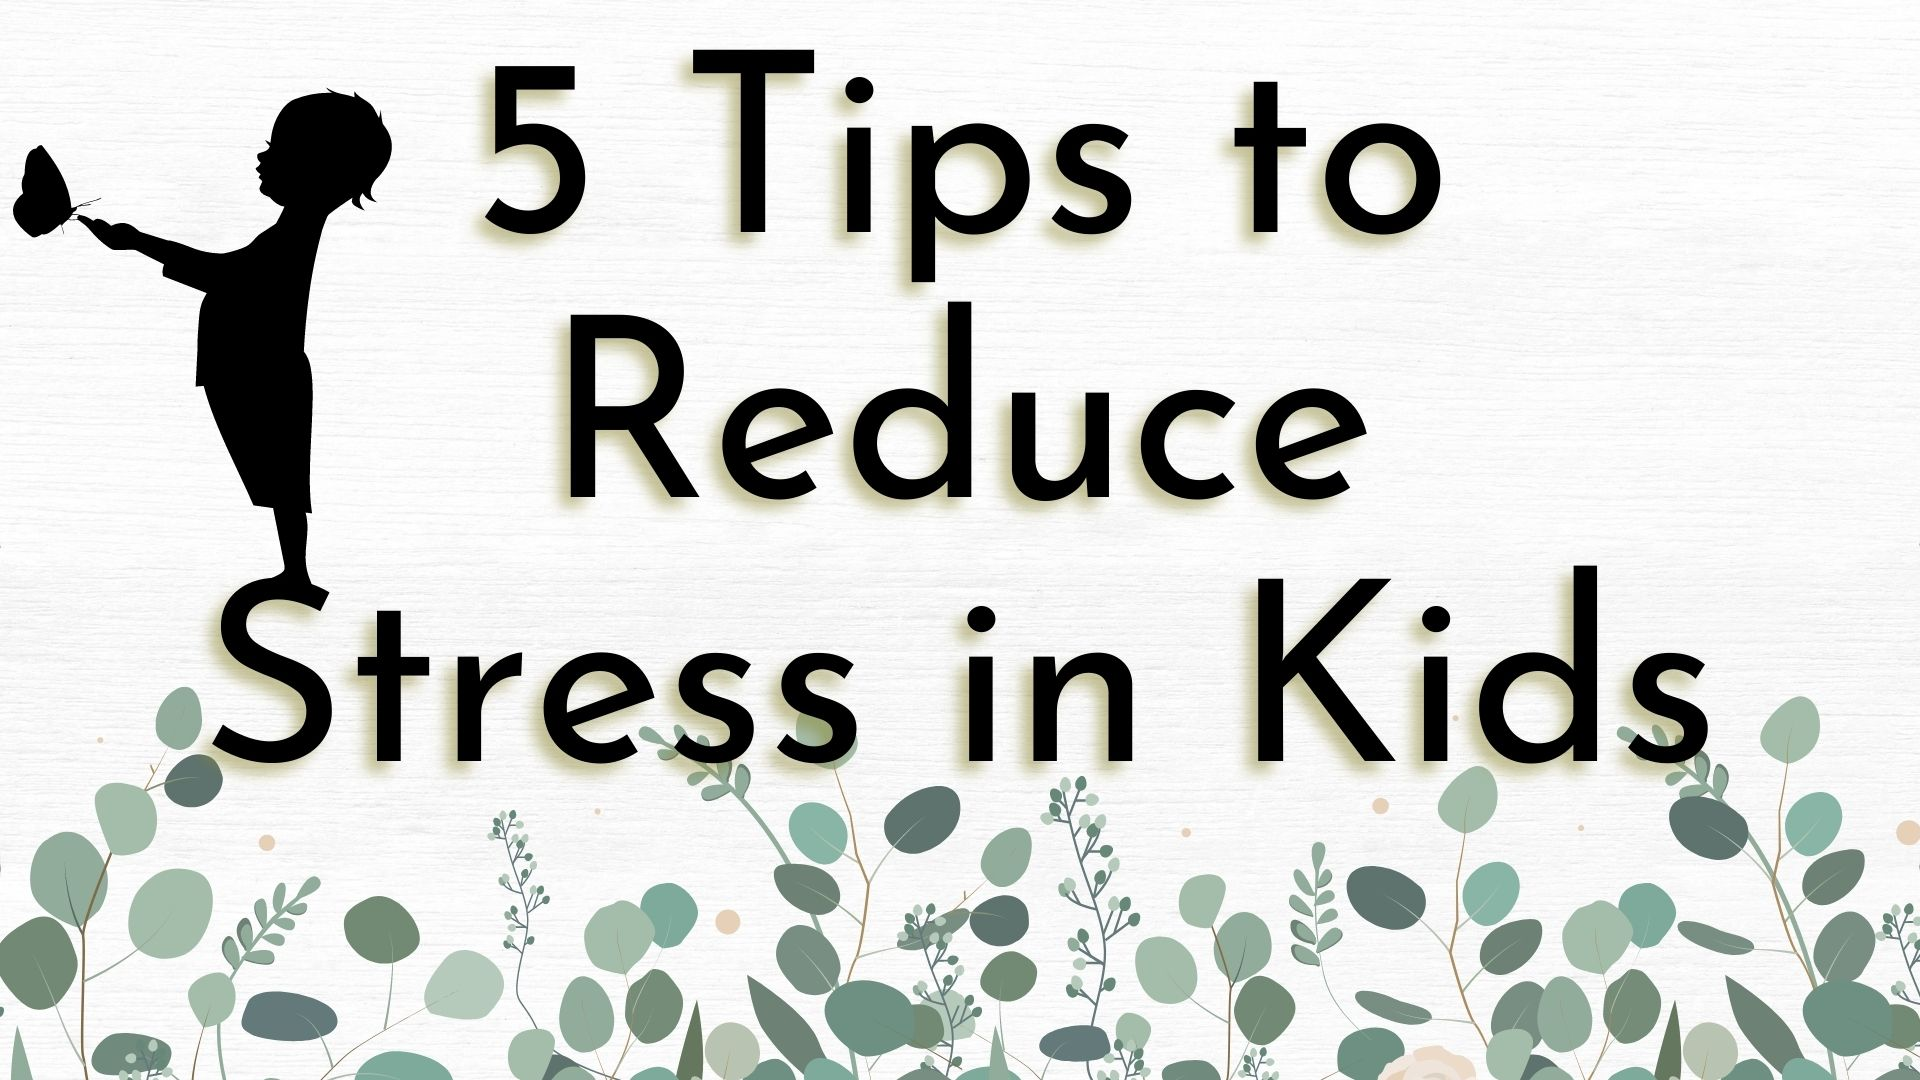 Blog: 5 Tips to Reduce Stress in Kids